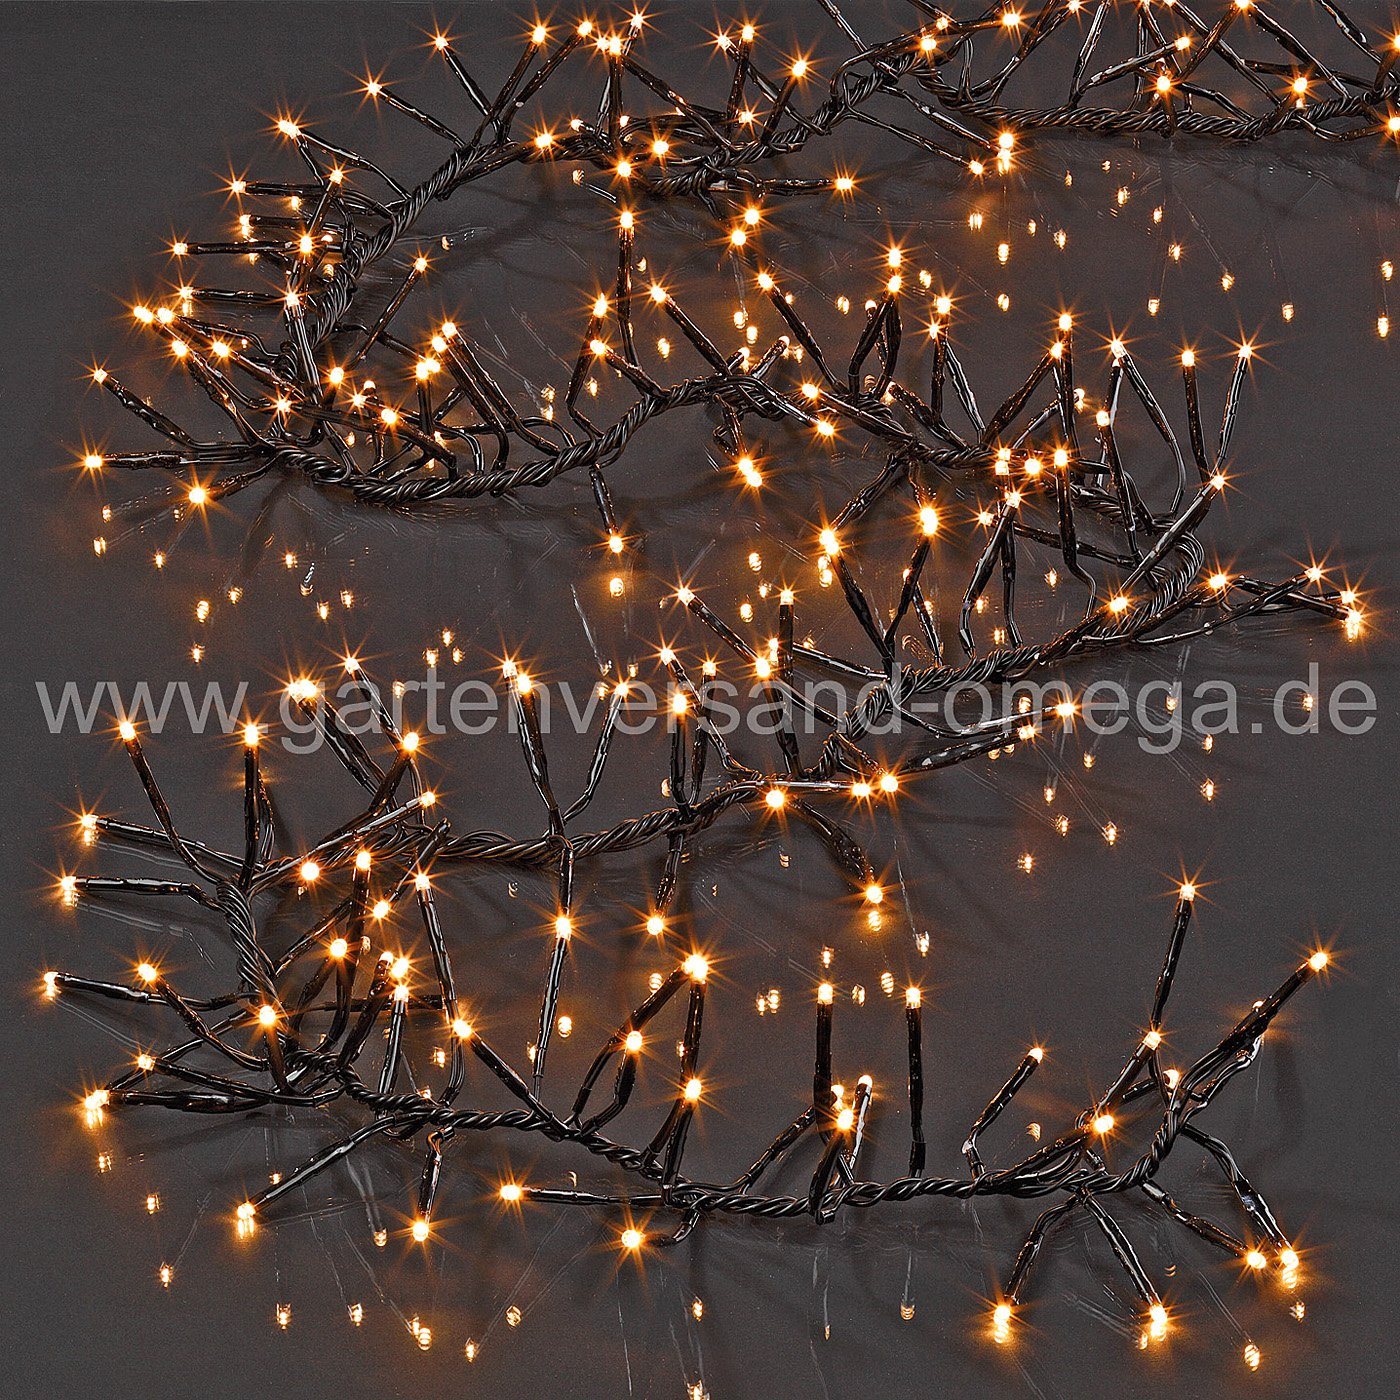 lichterkette au en weihnachten my blog. Black Bedroom Furniture Sets. Home Design Ideas